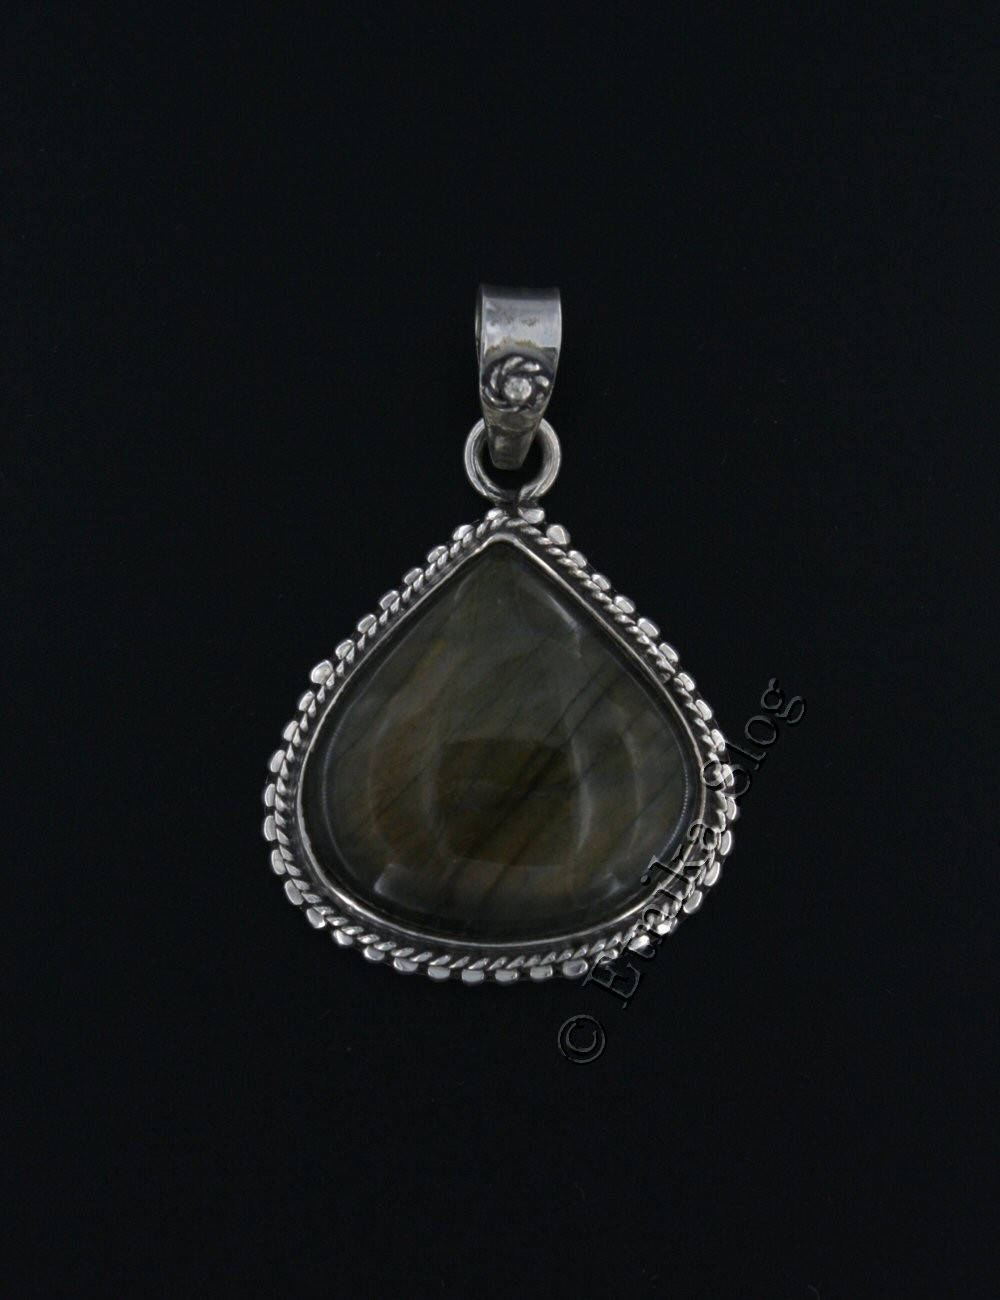 SILVER AND STONE PENDANTS ARG-PP1550-01 - Oriente Import S.r.l.